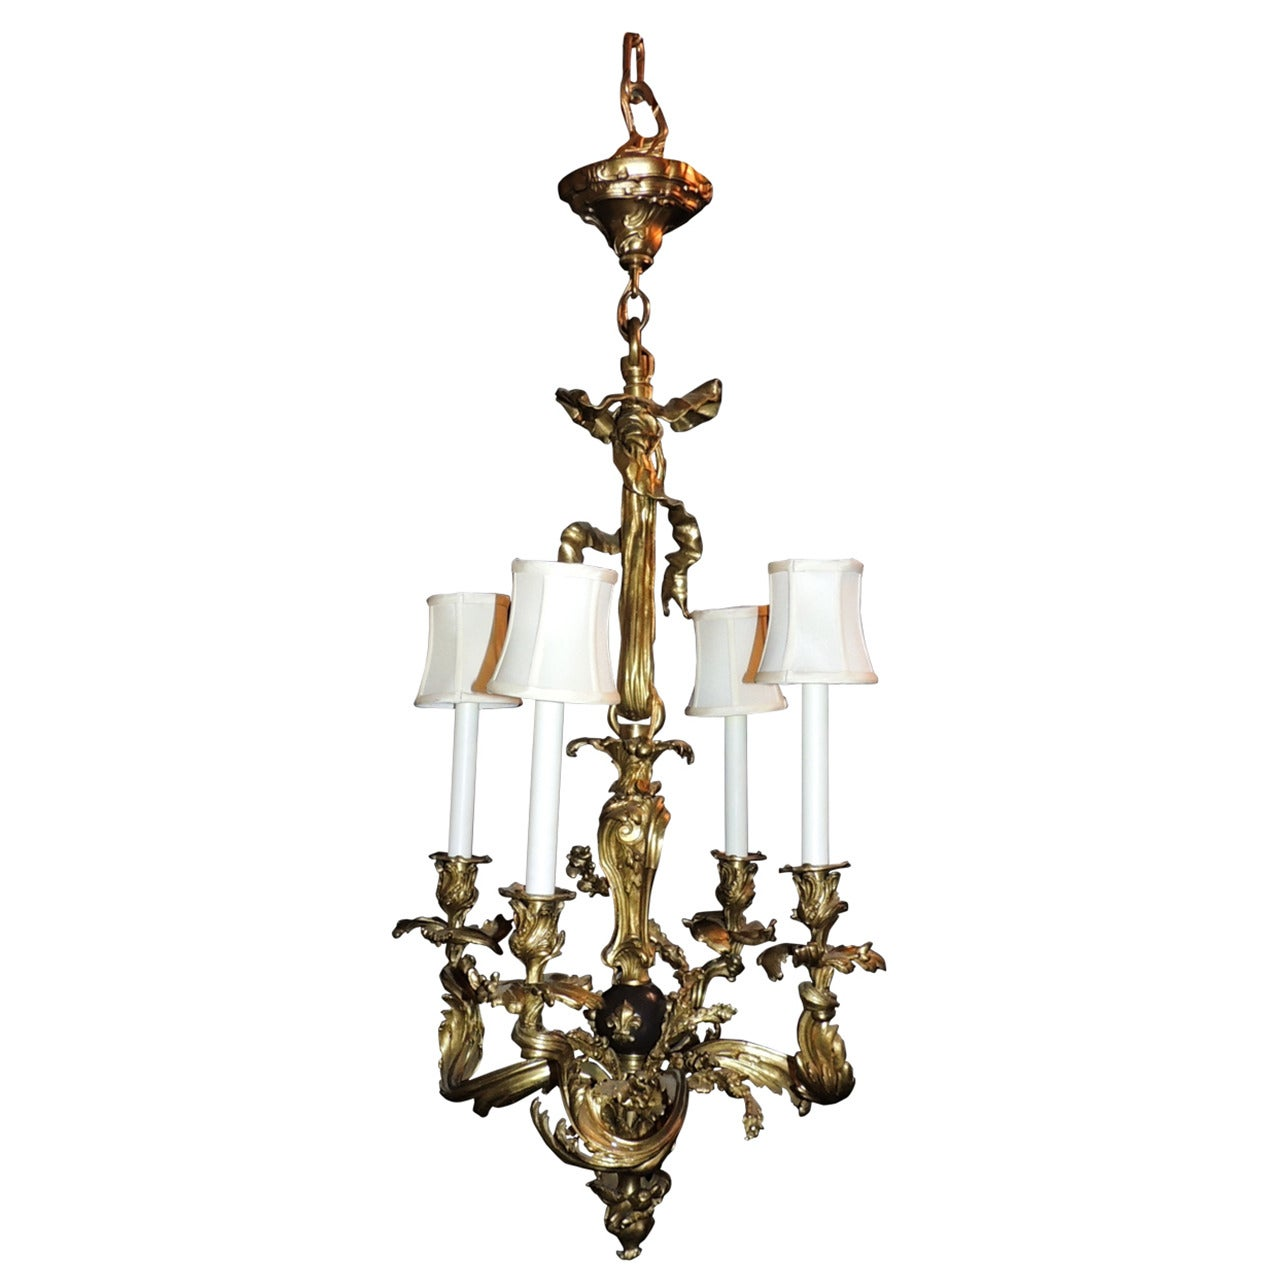 Wonderful French Rococo Doré Bronze and Patina Bow Top Ribbon Chandelier